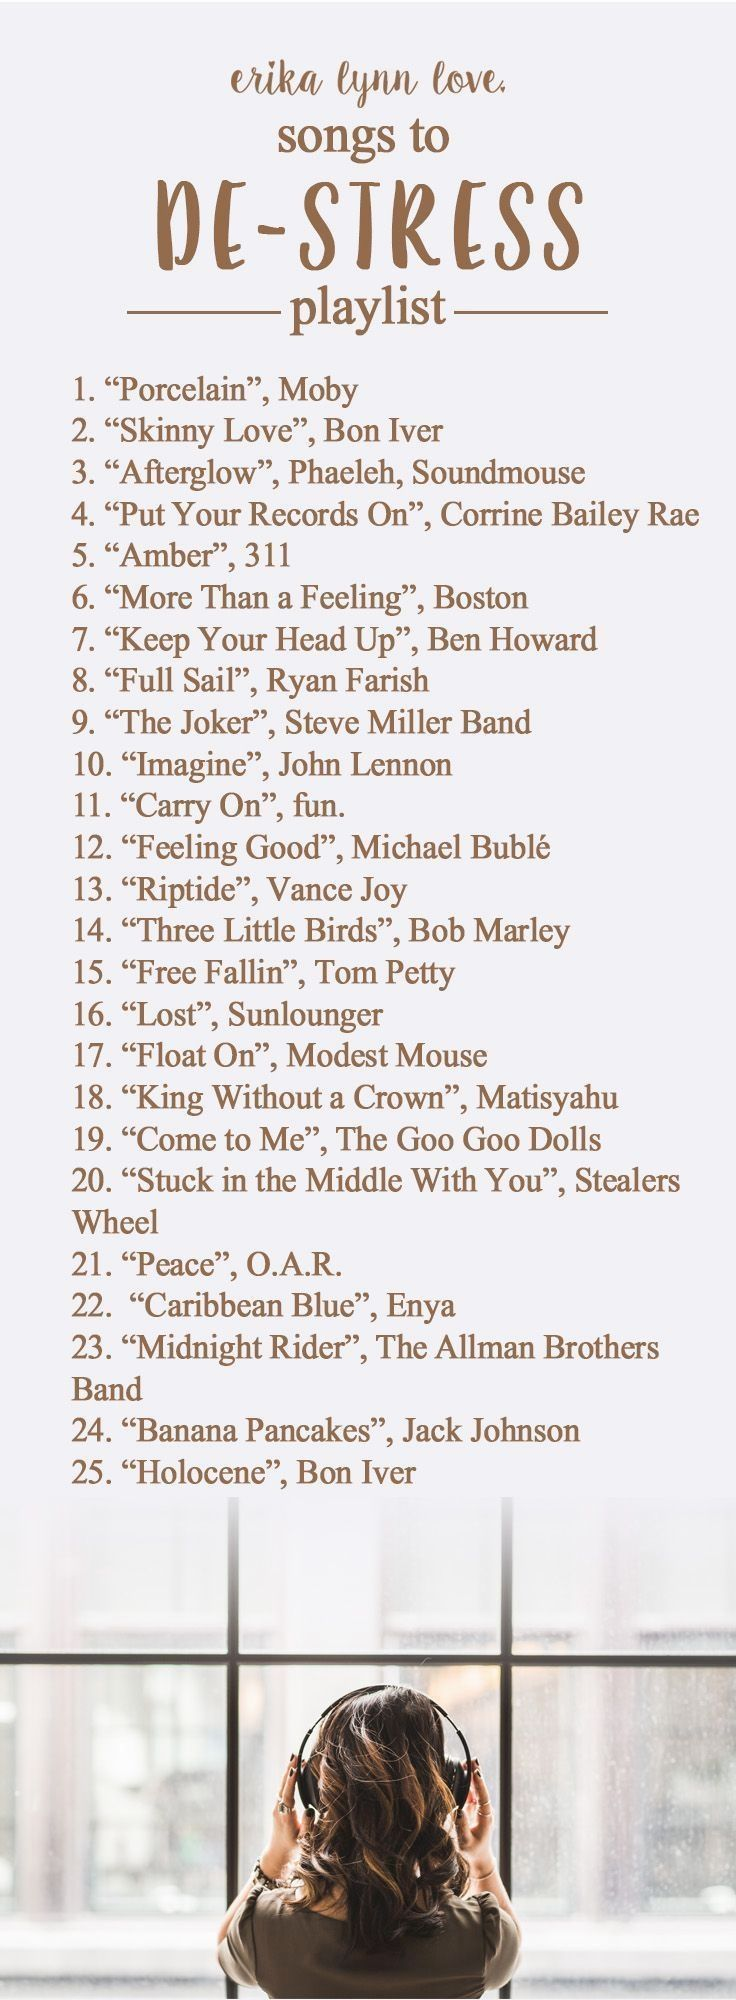 When you are stressed out these songs will help ease your tension.